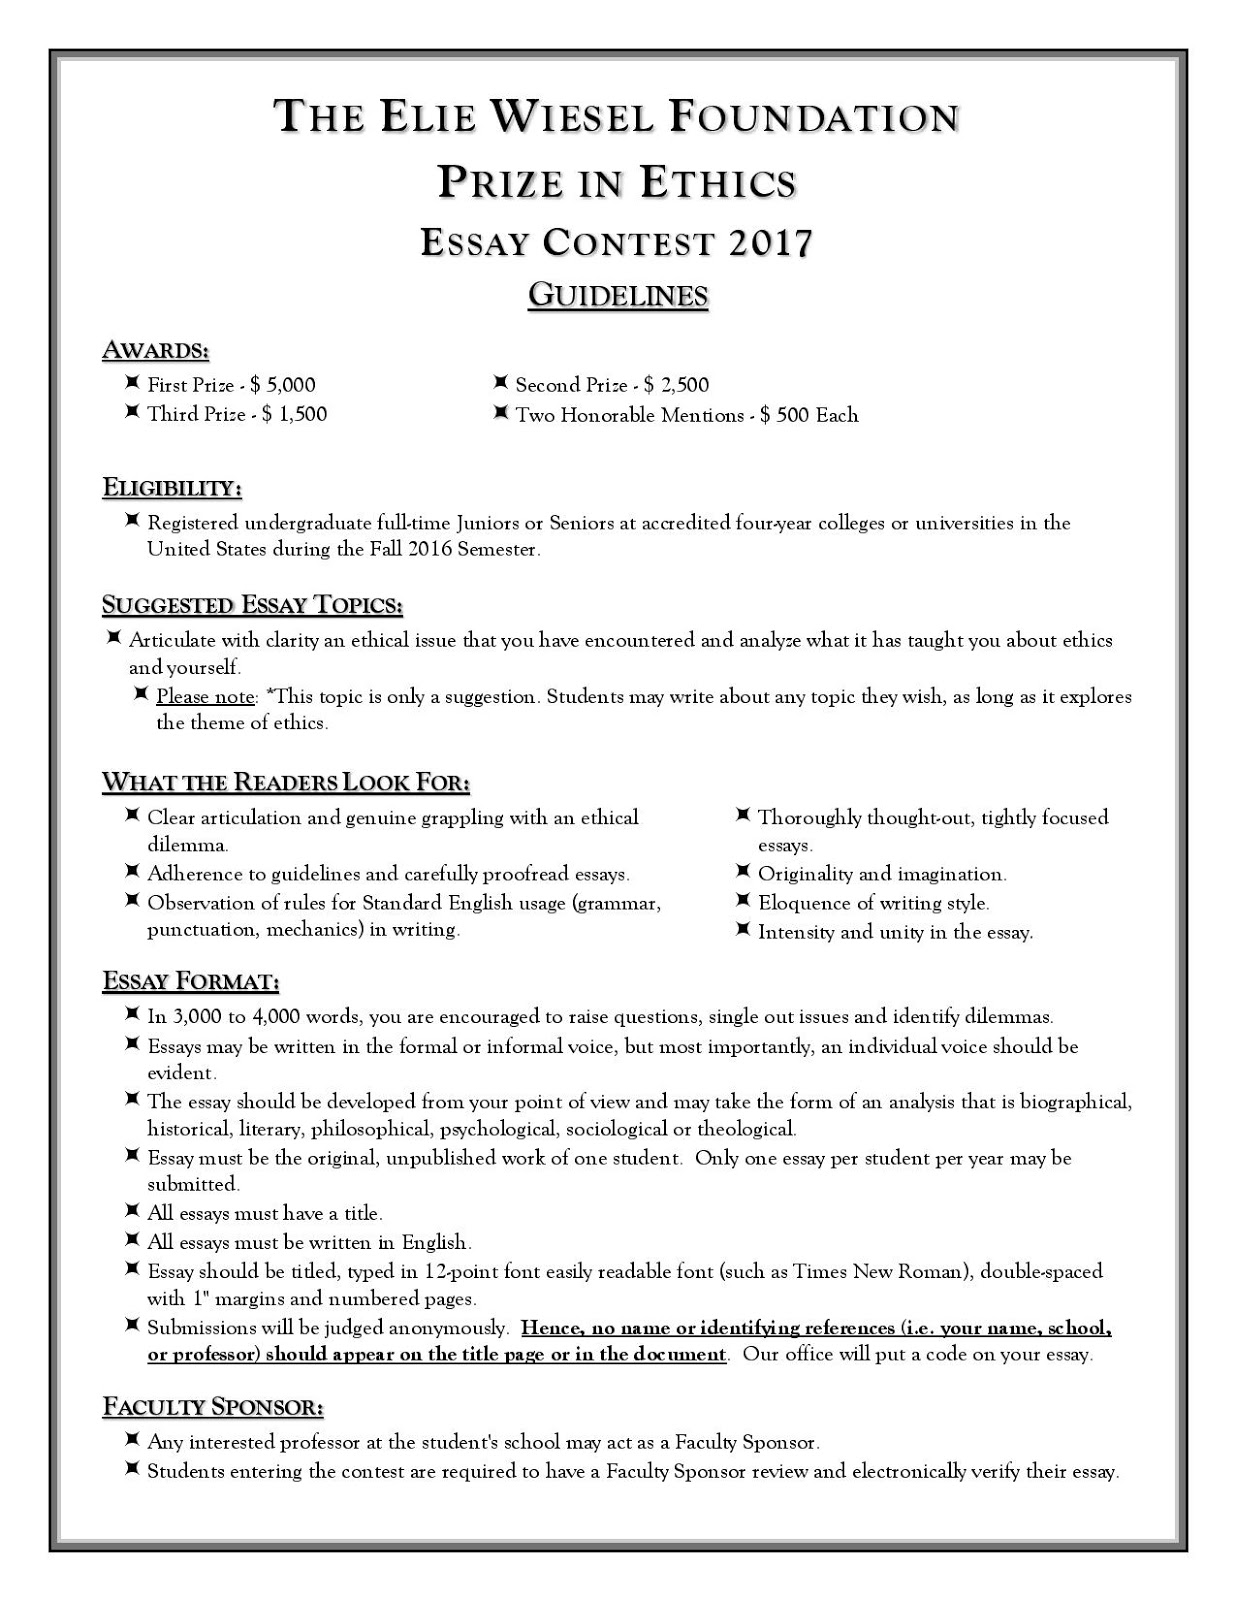 Examples Of Essay Papers Analysis Of Frankenstein By Mary Shelley  Morality Without God Thesis For Argumentative Essay also Essays On Science Choosing An Essay Topic Easy Interesting Topics Here Essay Vs Paper